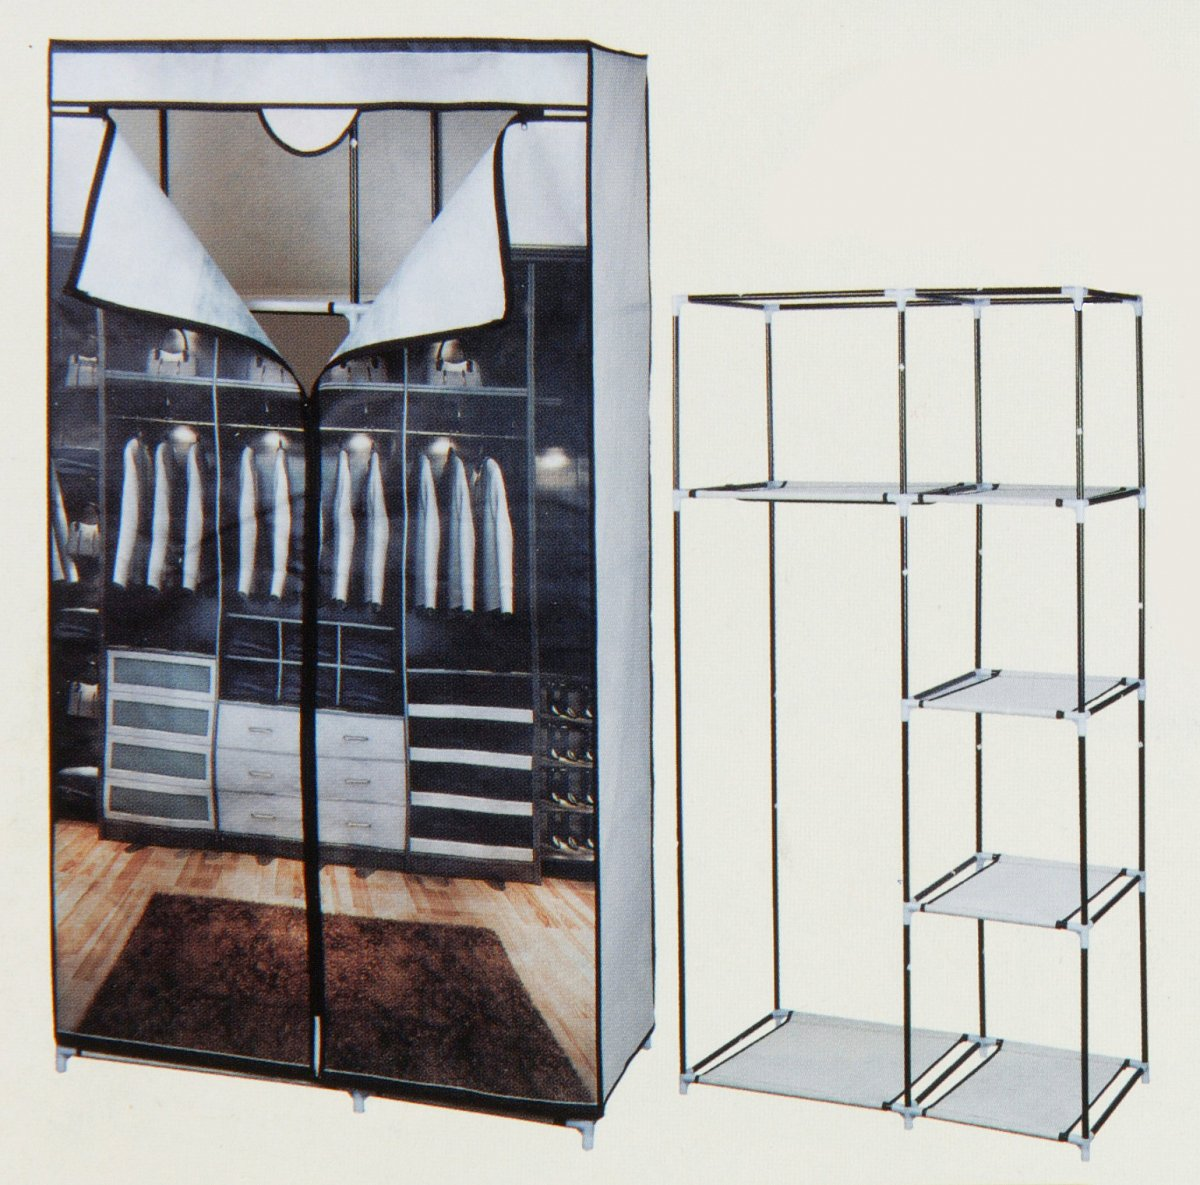 kleiderschrank schrank faltschrank stoff textilschrank camping motivdruck m040 ebay. Black Bedroom Furniture Sets. Home Design Ideas